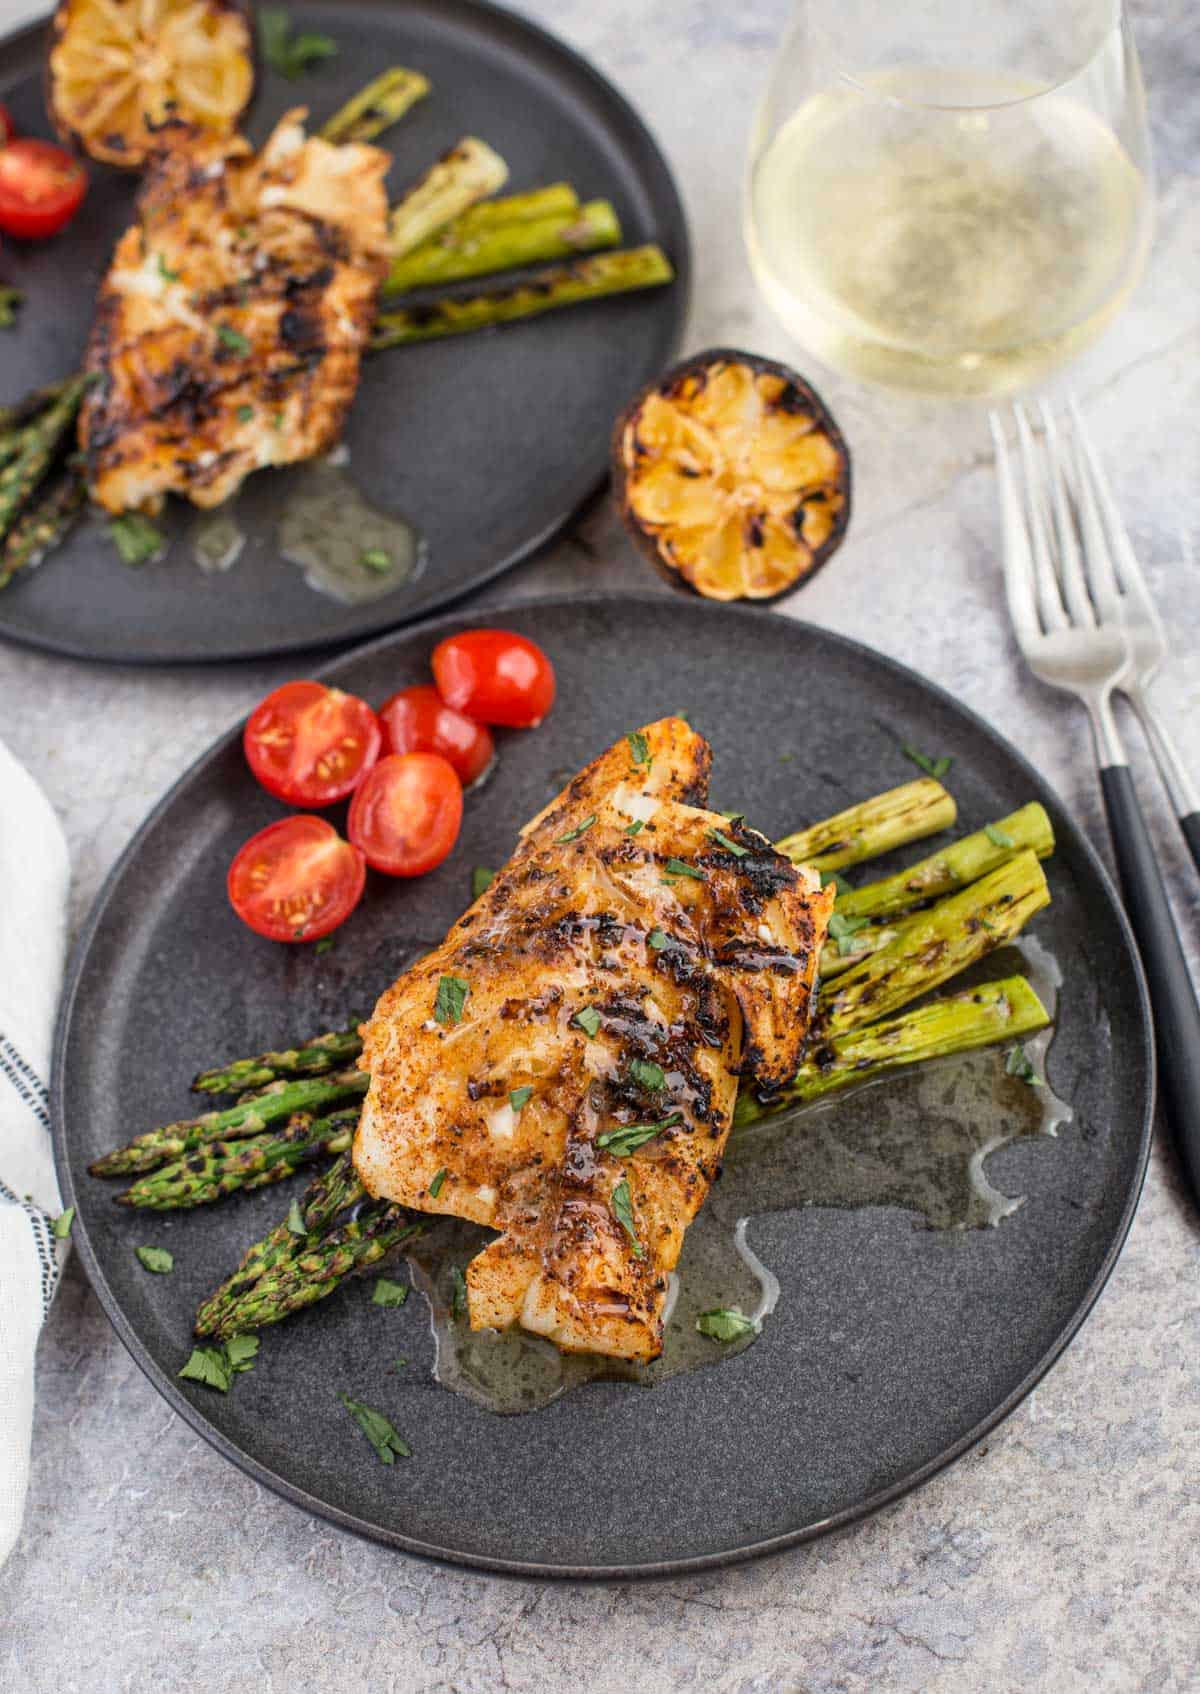 Grilled cod with white wine butter sauce on a platter with grilled asparagus